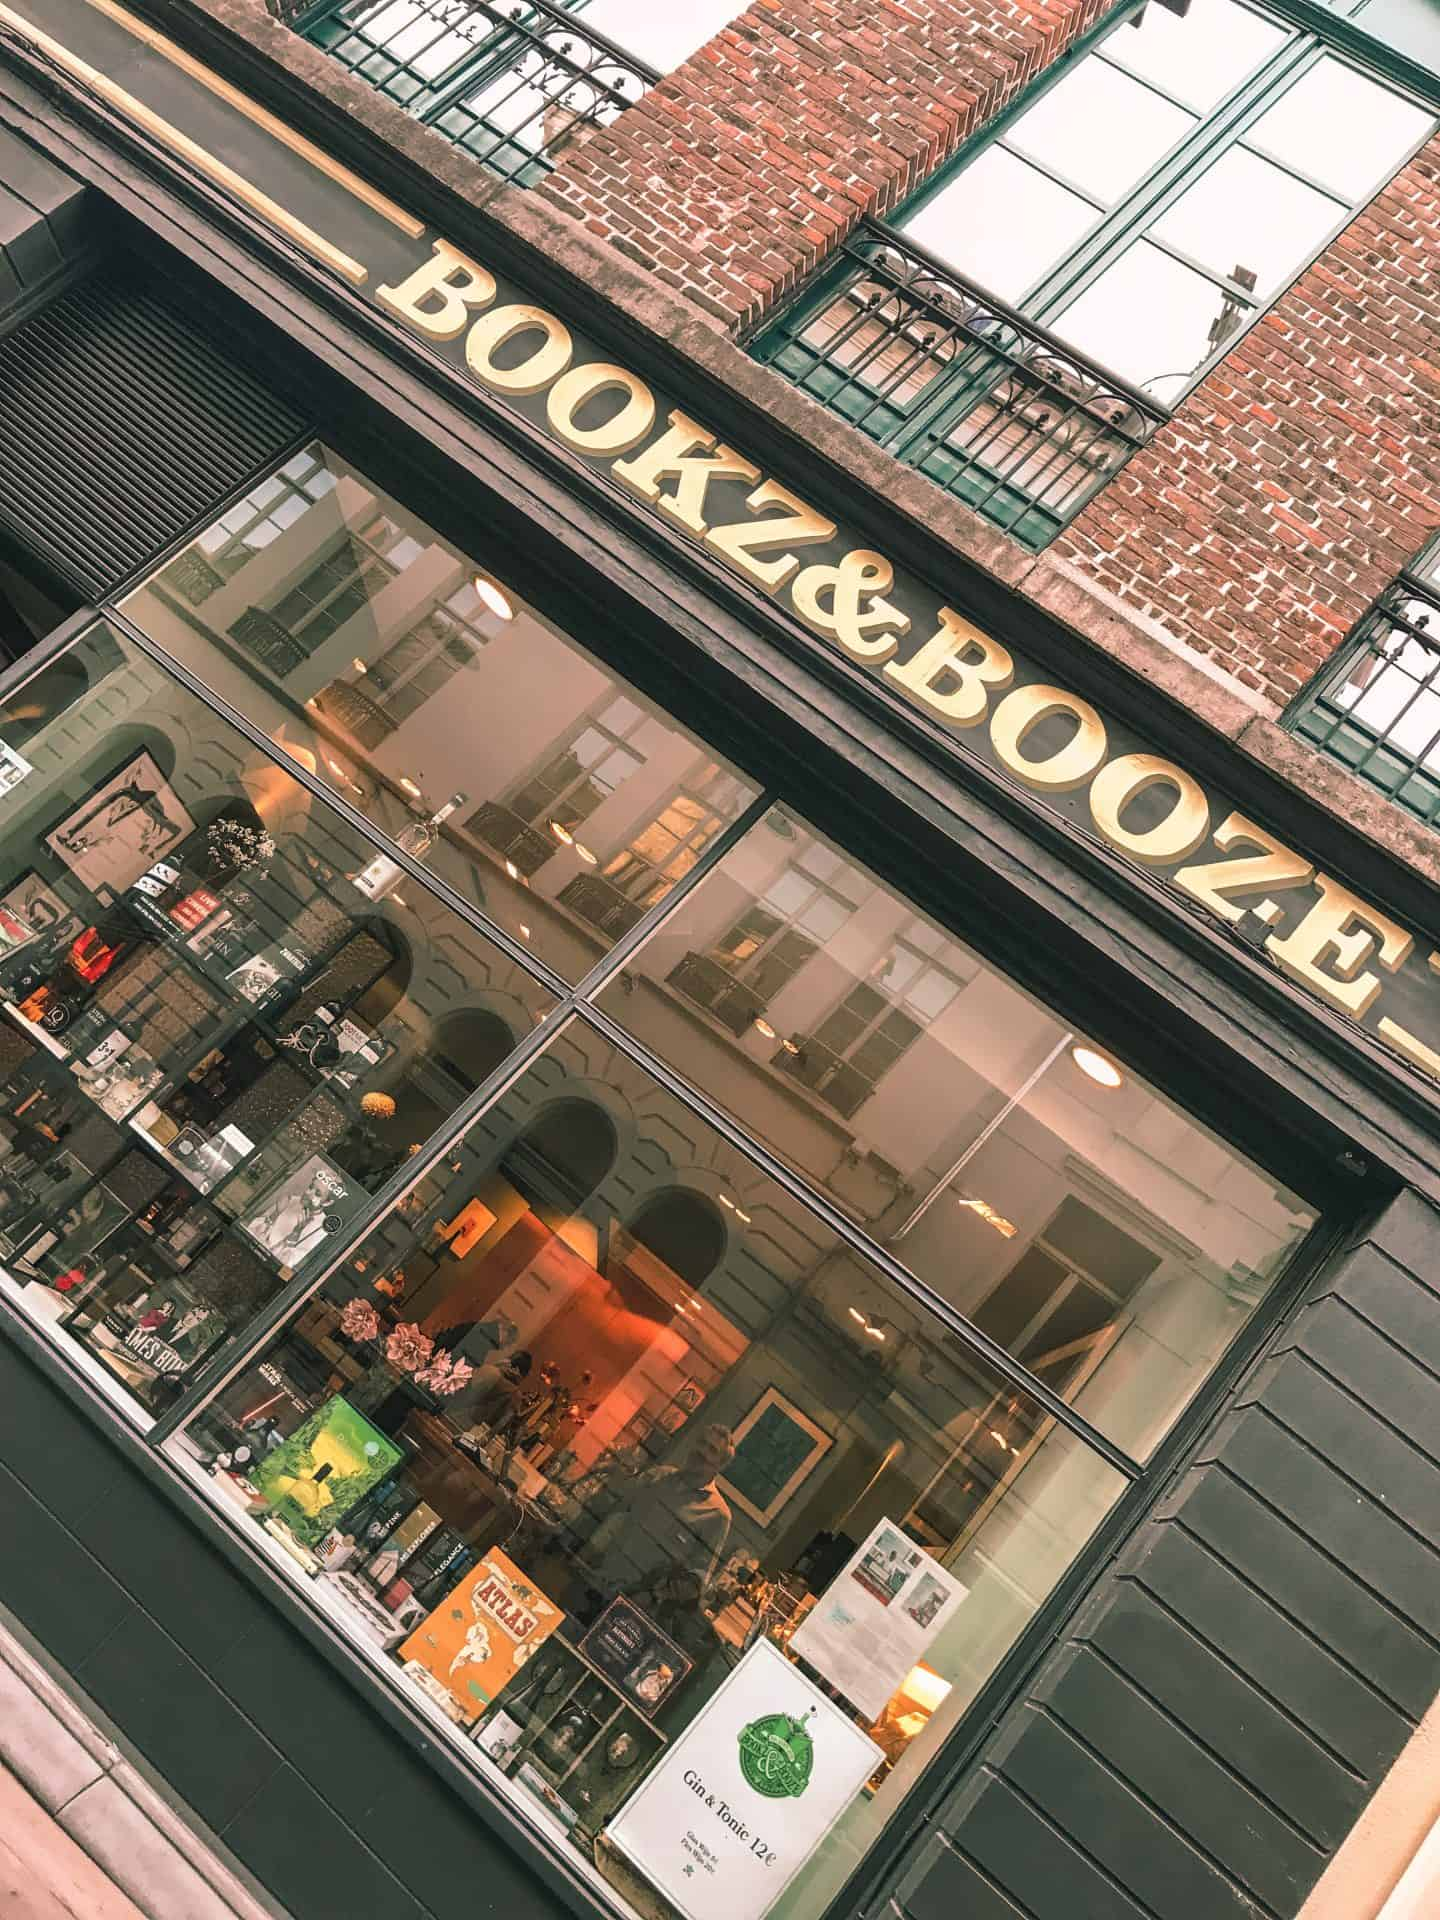 Bookz and Booze in Ghent